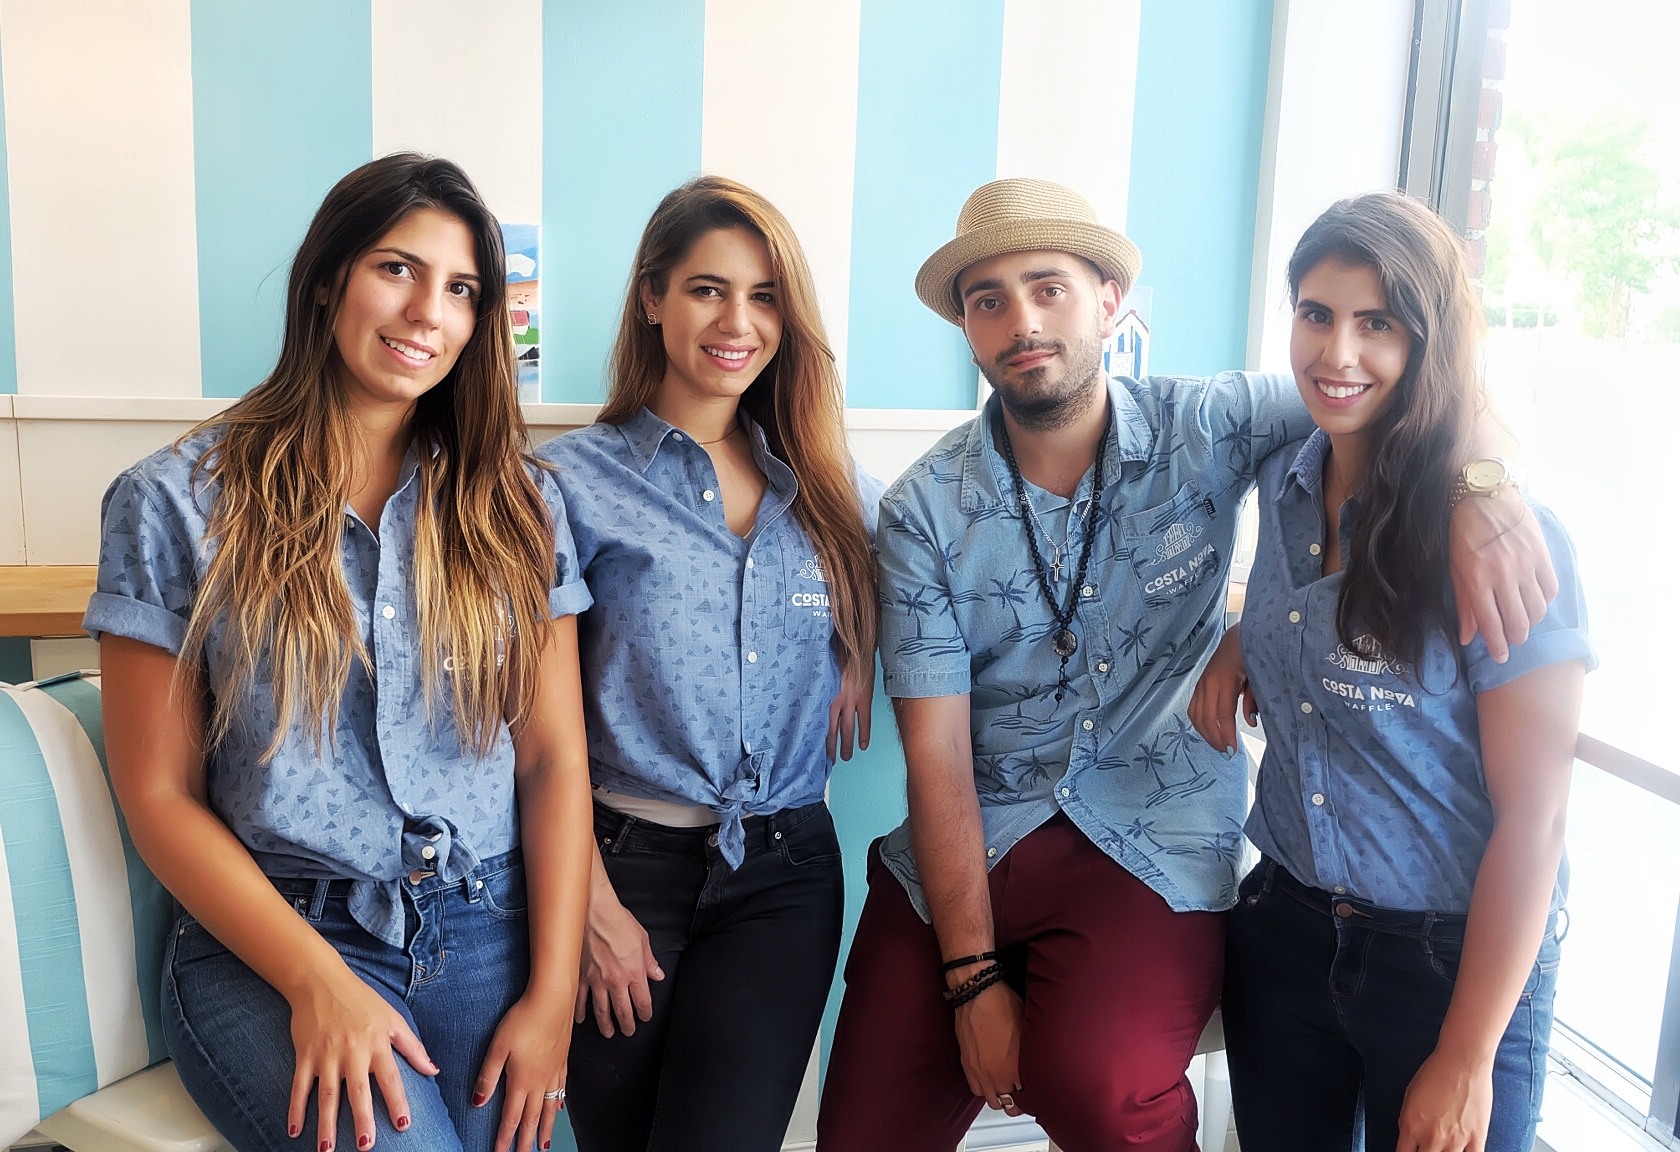 From left to right : Andrea Alves Fernandes, Monica Oliveira, Andre Oliveira, Amanda Alves